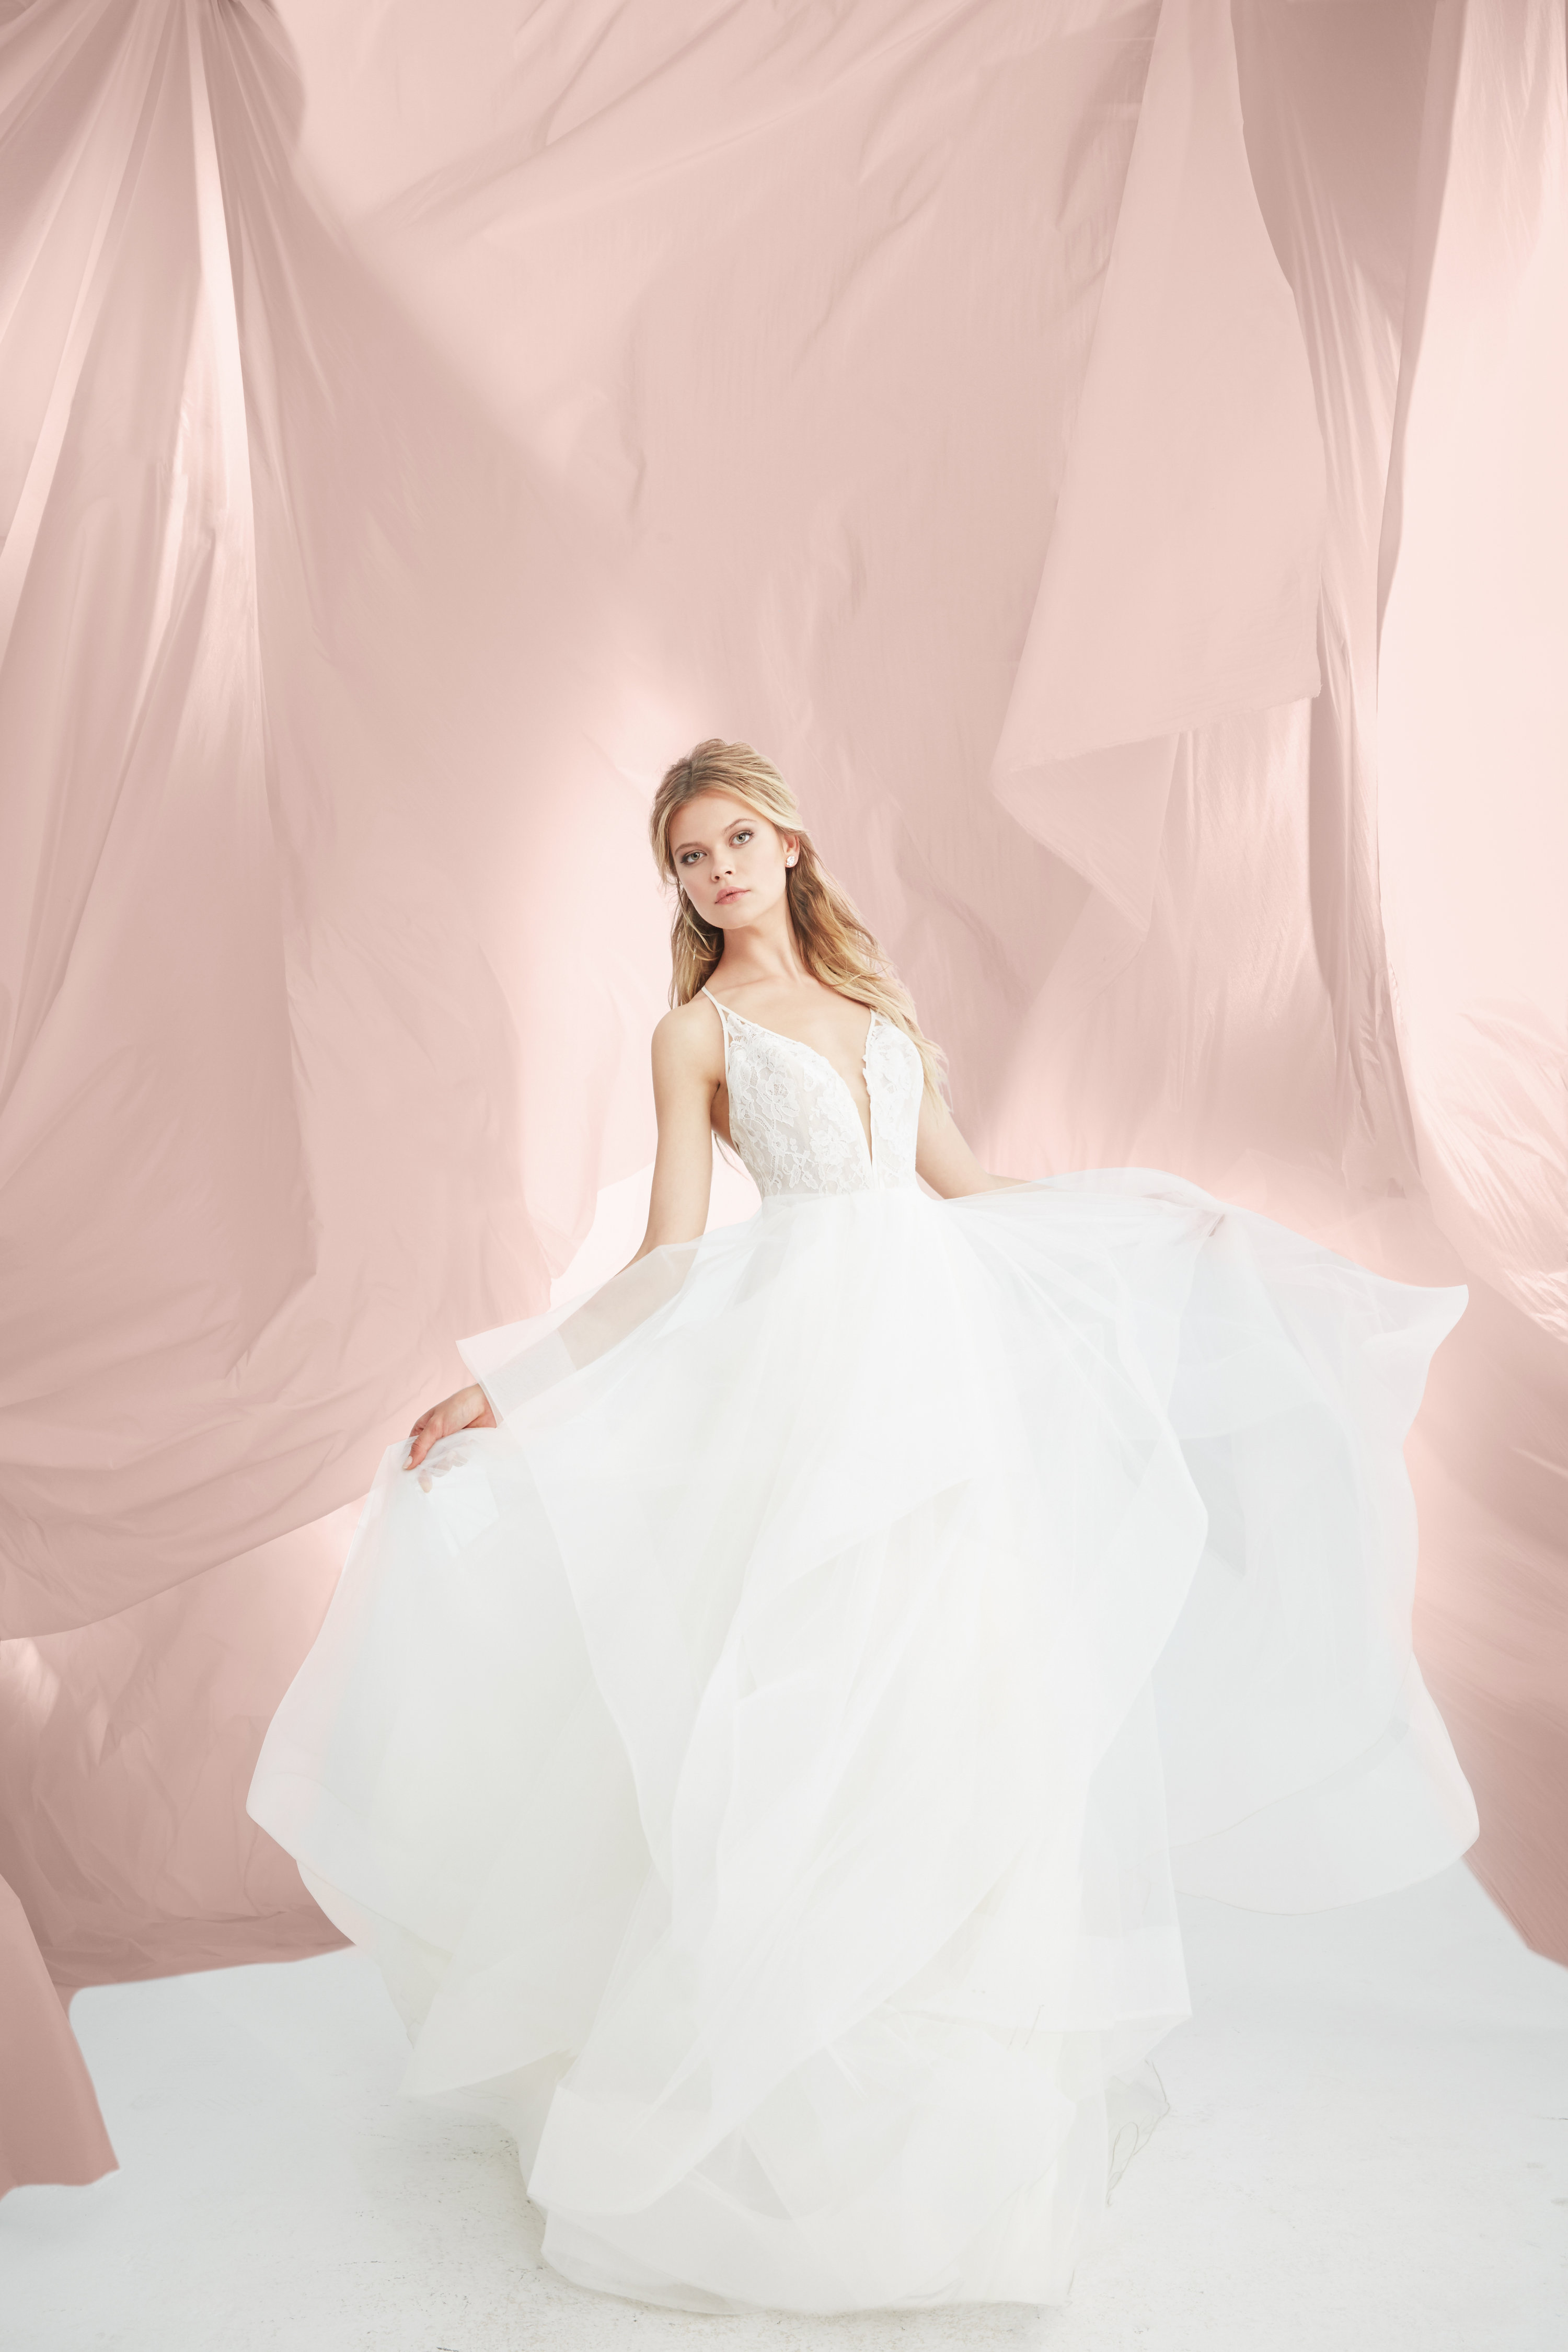 Bridal Gowns and Wedding Dresses by JLM Couture - Style 1754 Rory